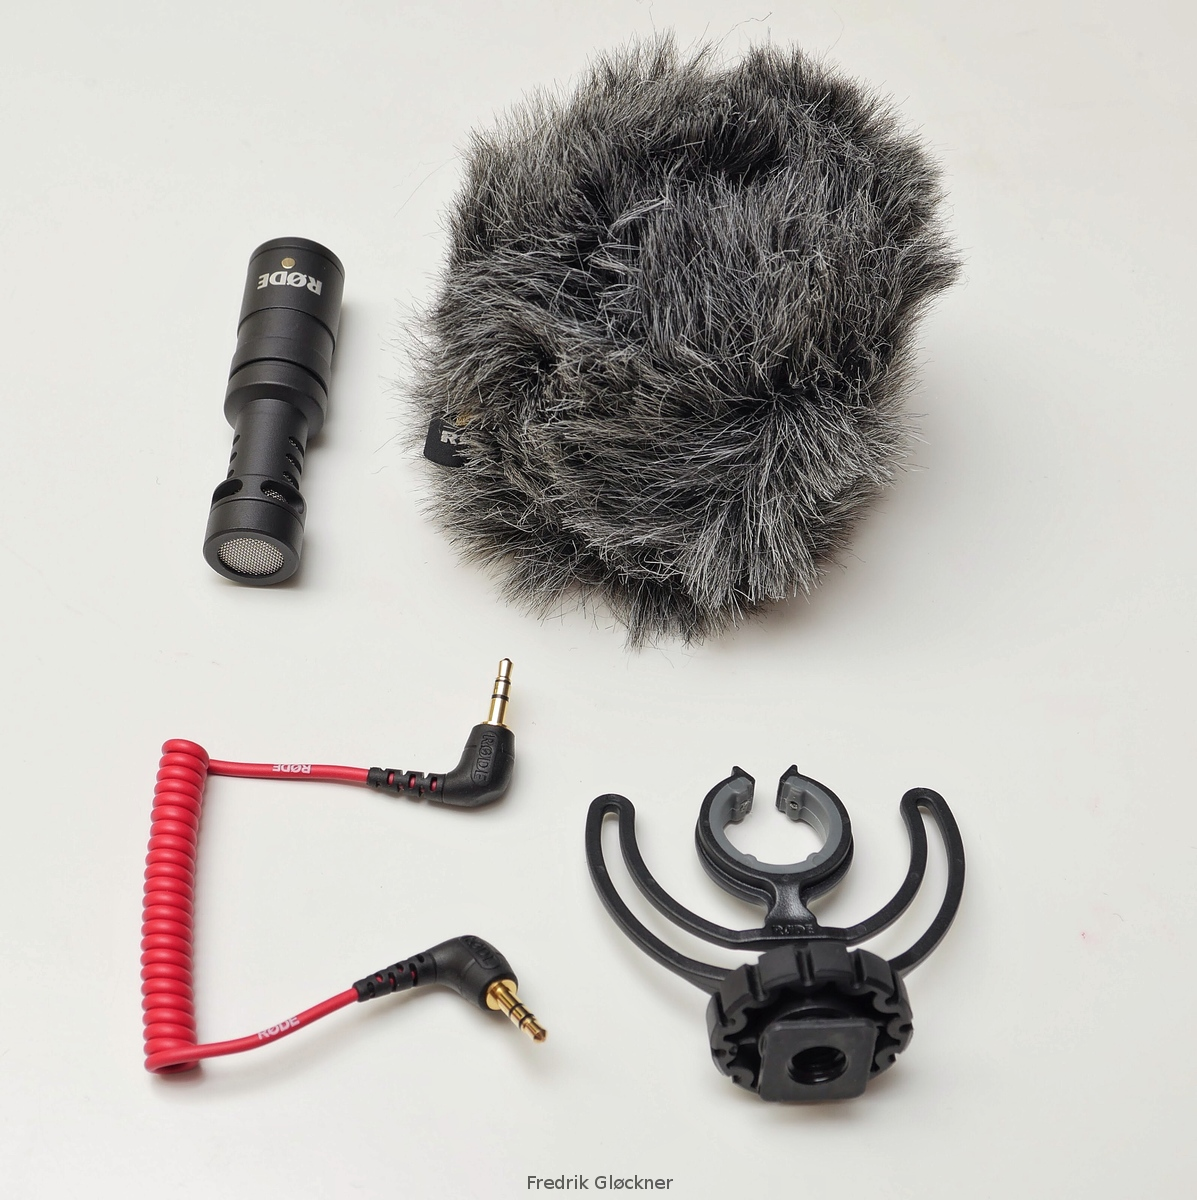 Micro 4 3rds Photography Rde Videomicro Review Mic Rode Video There Is Also A Shock Absorbing Mount For Placing The Microphone In Cameras Flash Shoe As Well Furry Wind Shield